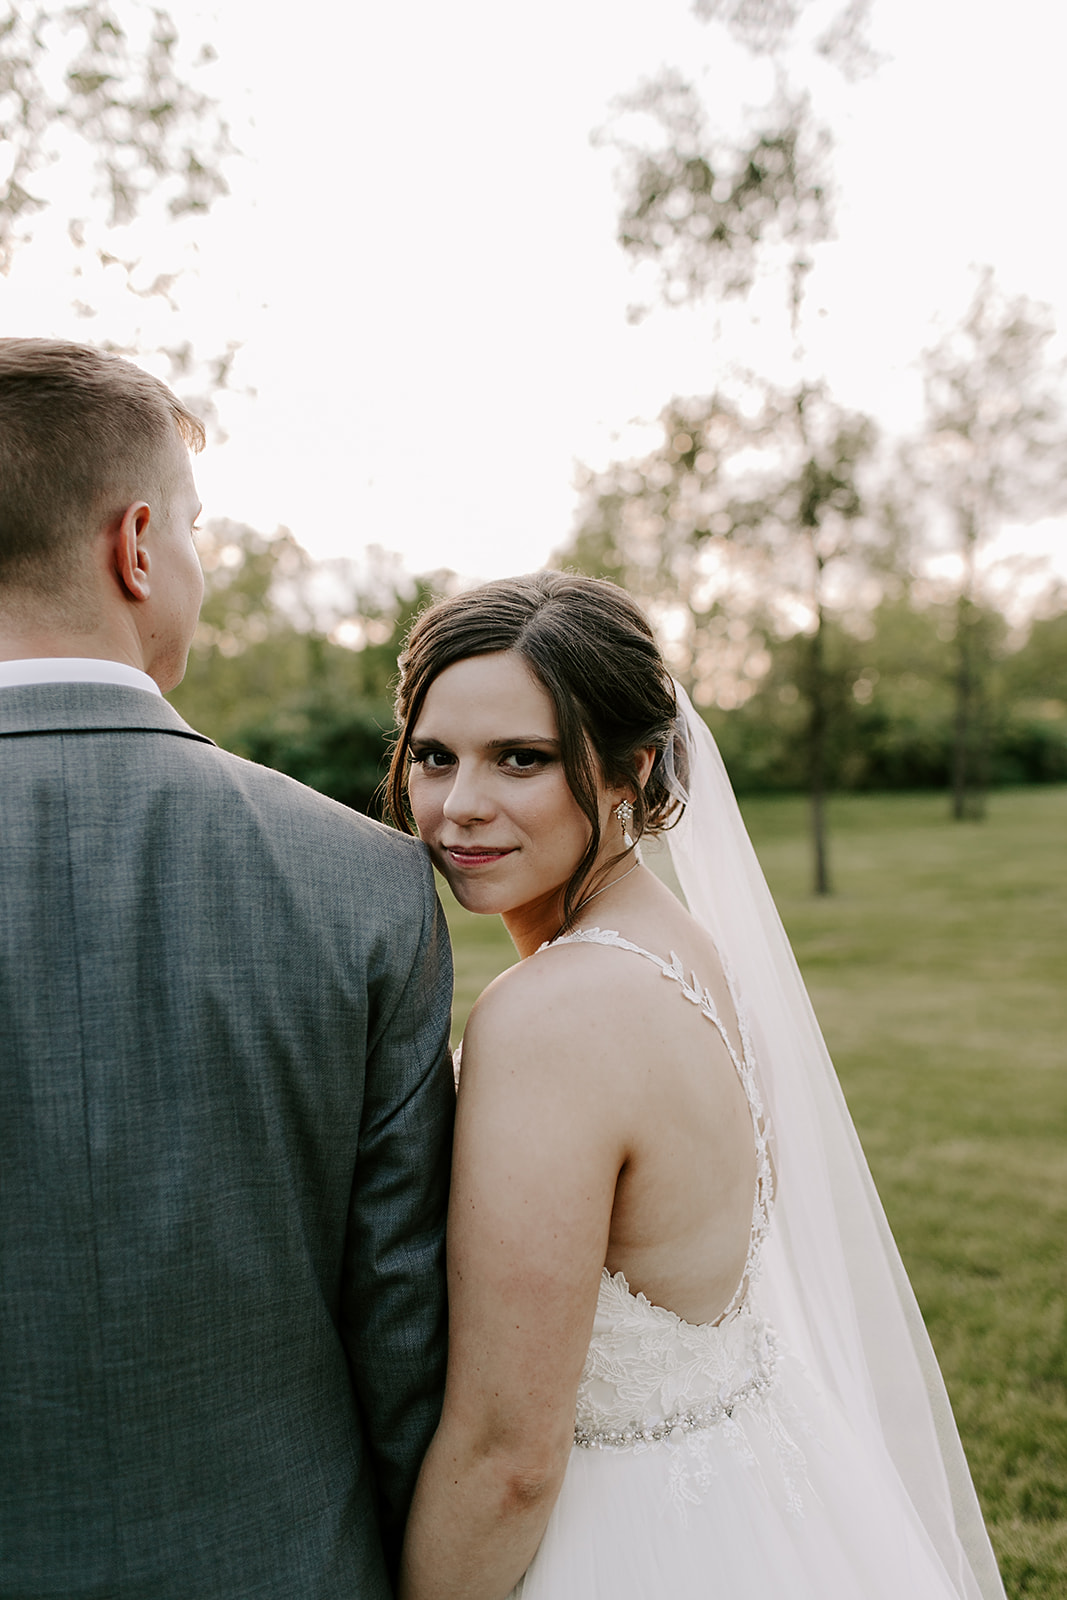 Kendra_and_Mattew_Indiana_Wedding_by_Emily_Wehner-865.jpg